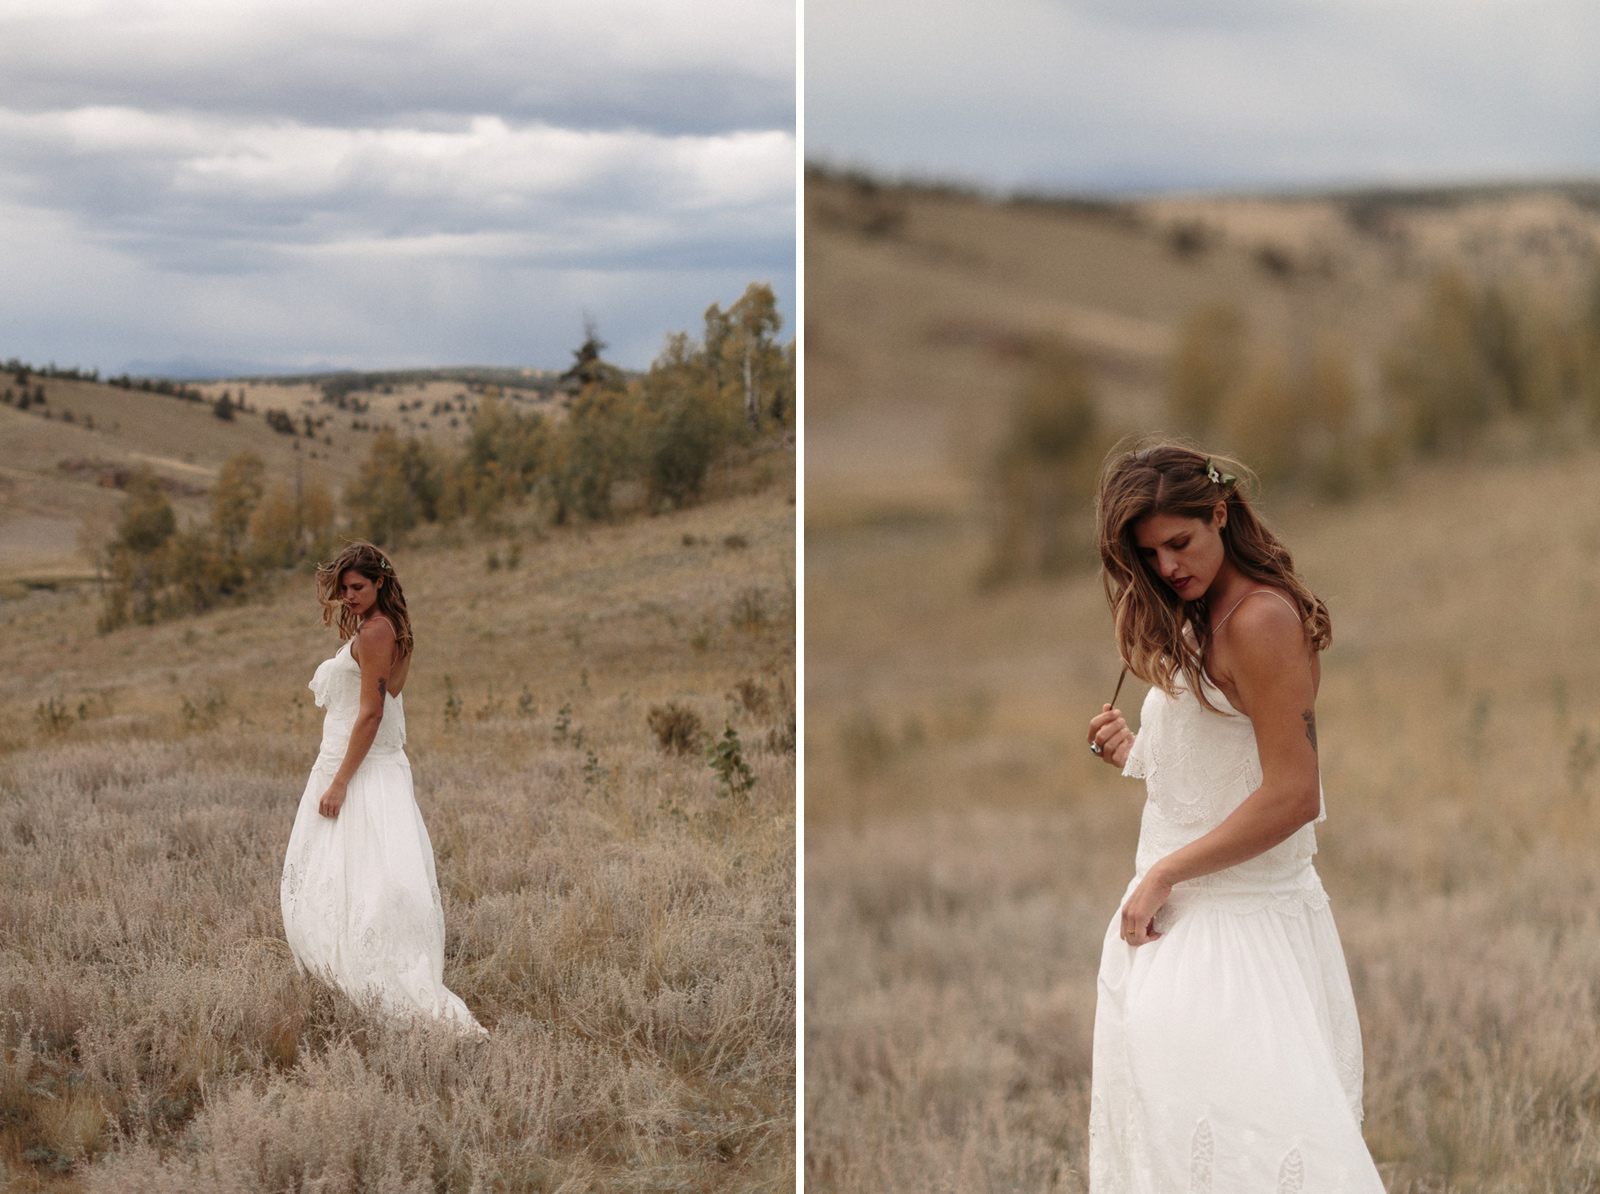 Jefferson-Colorado-Wedding-Photographer-Candice-and-TJ-74.jpg